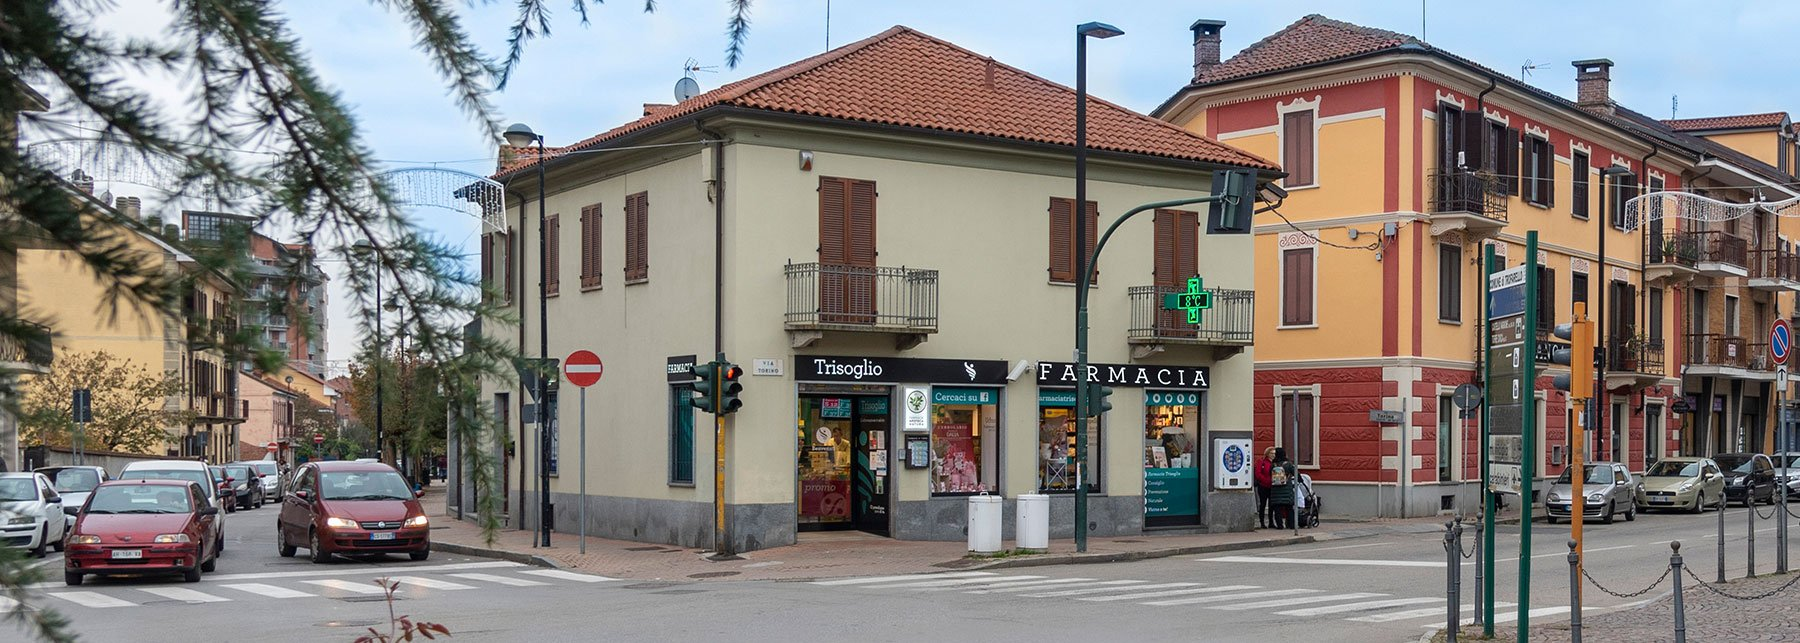 Farmacia Trisoglio - Trofarello (TO)